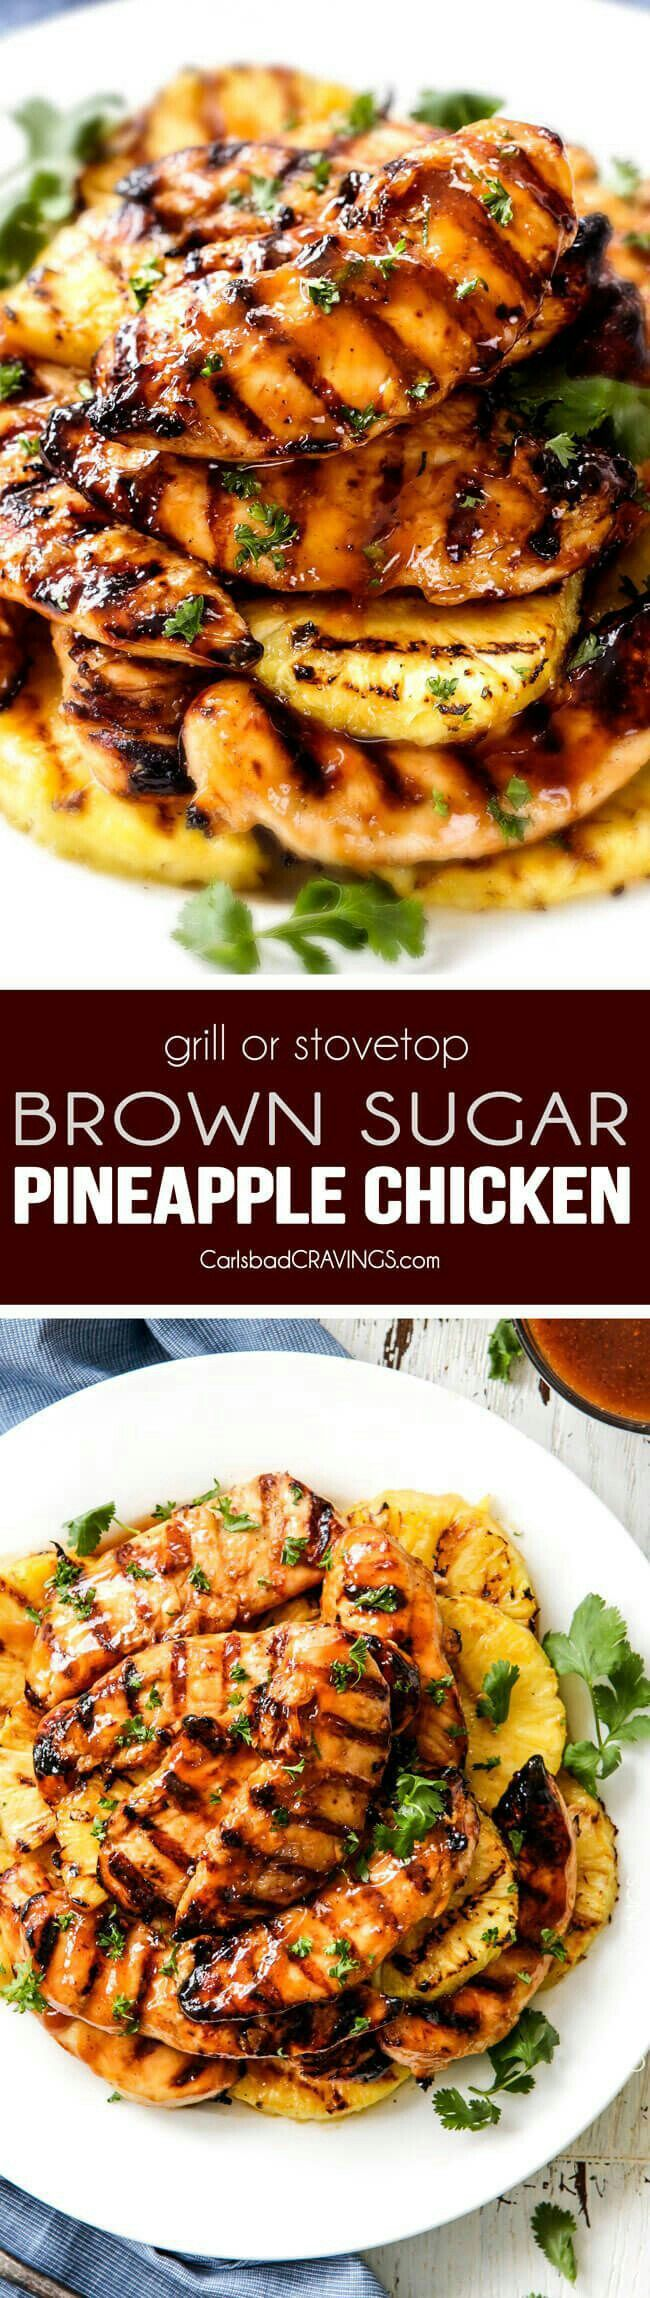 Brown sugar pineapple chicken